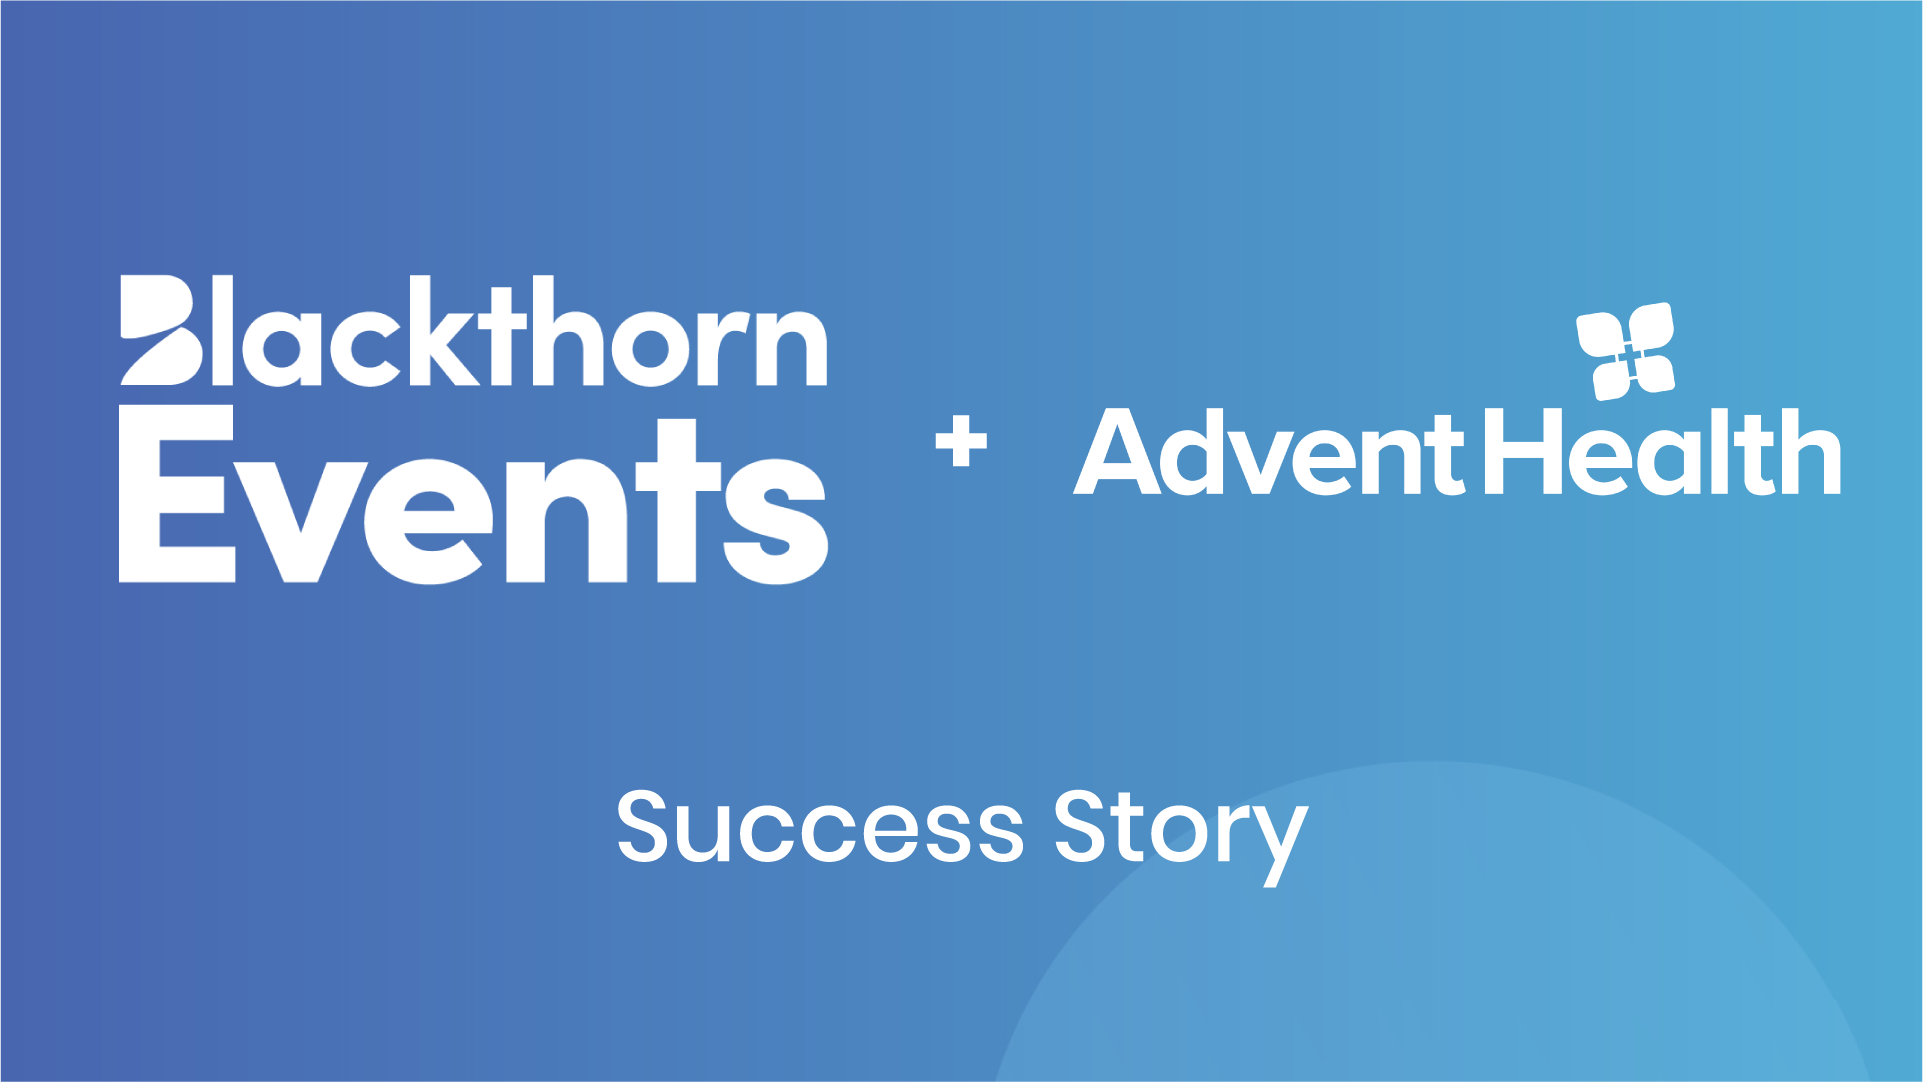 When Speed Matters: How Blackthorn Events Helped AdventHealth With COVID Vaccinations...Fast